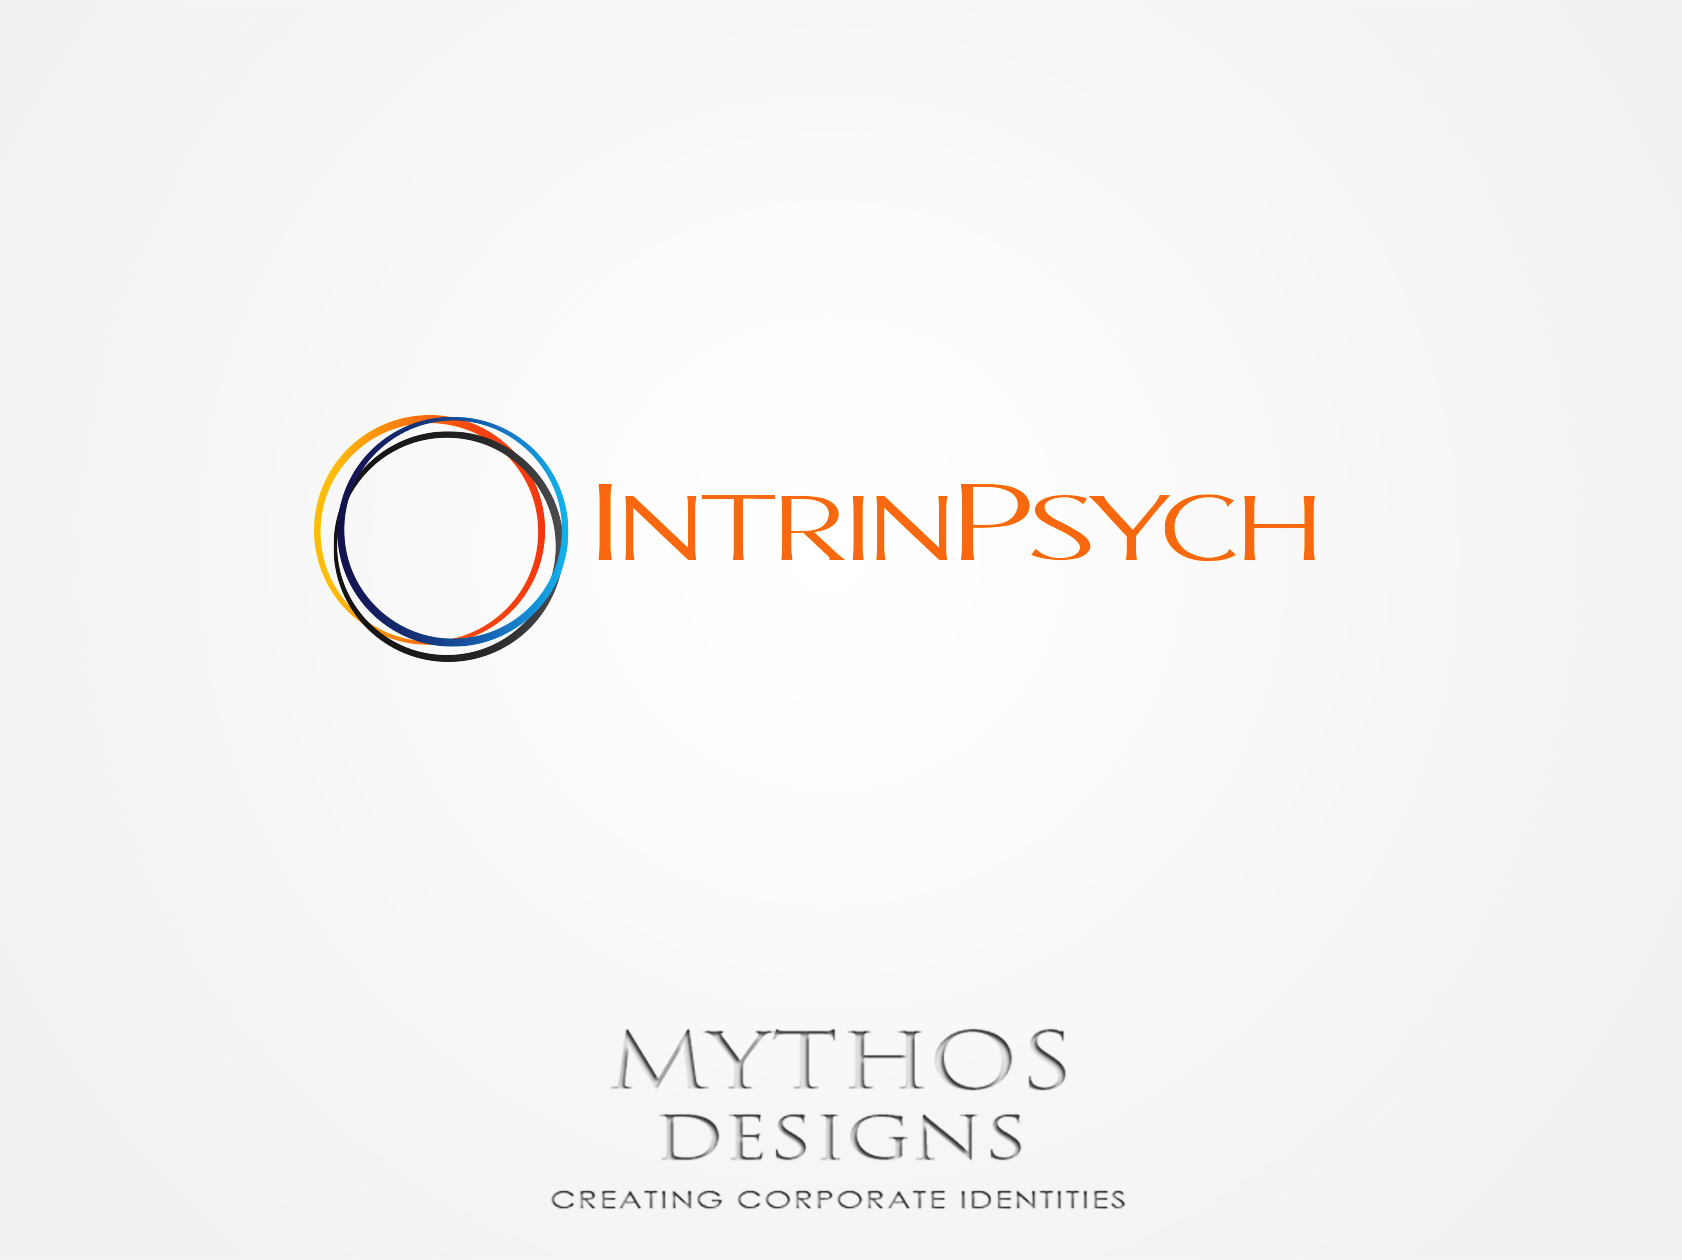 Logo Design by Mythos Designs - Entry No. 113 in the Logo Design Contest New Logo Design for IntrinPsych.